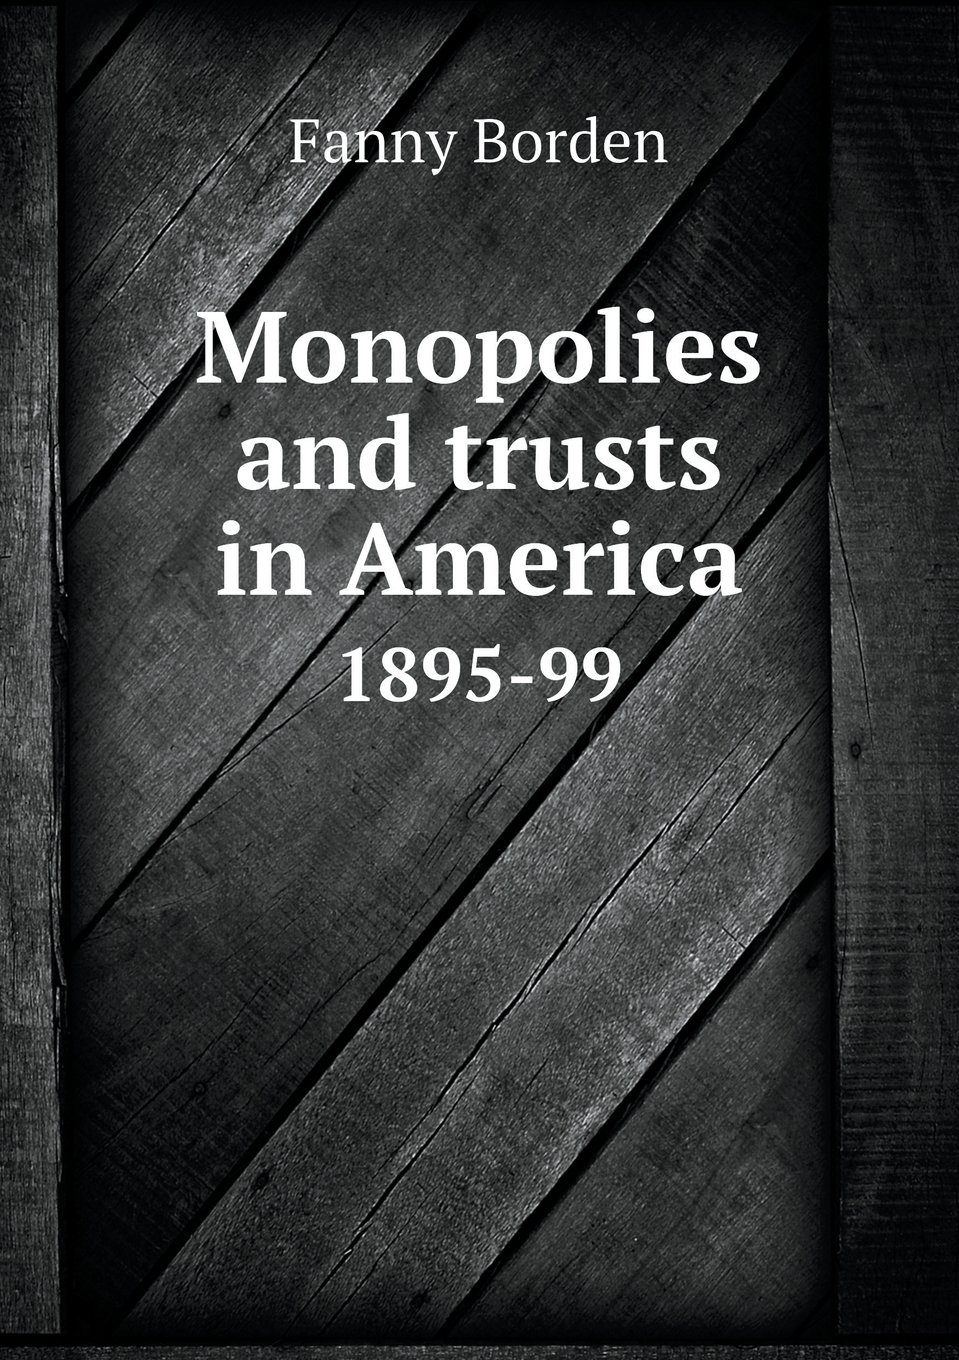 Monopolies and trusts in America 1895-99 PDF